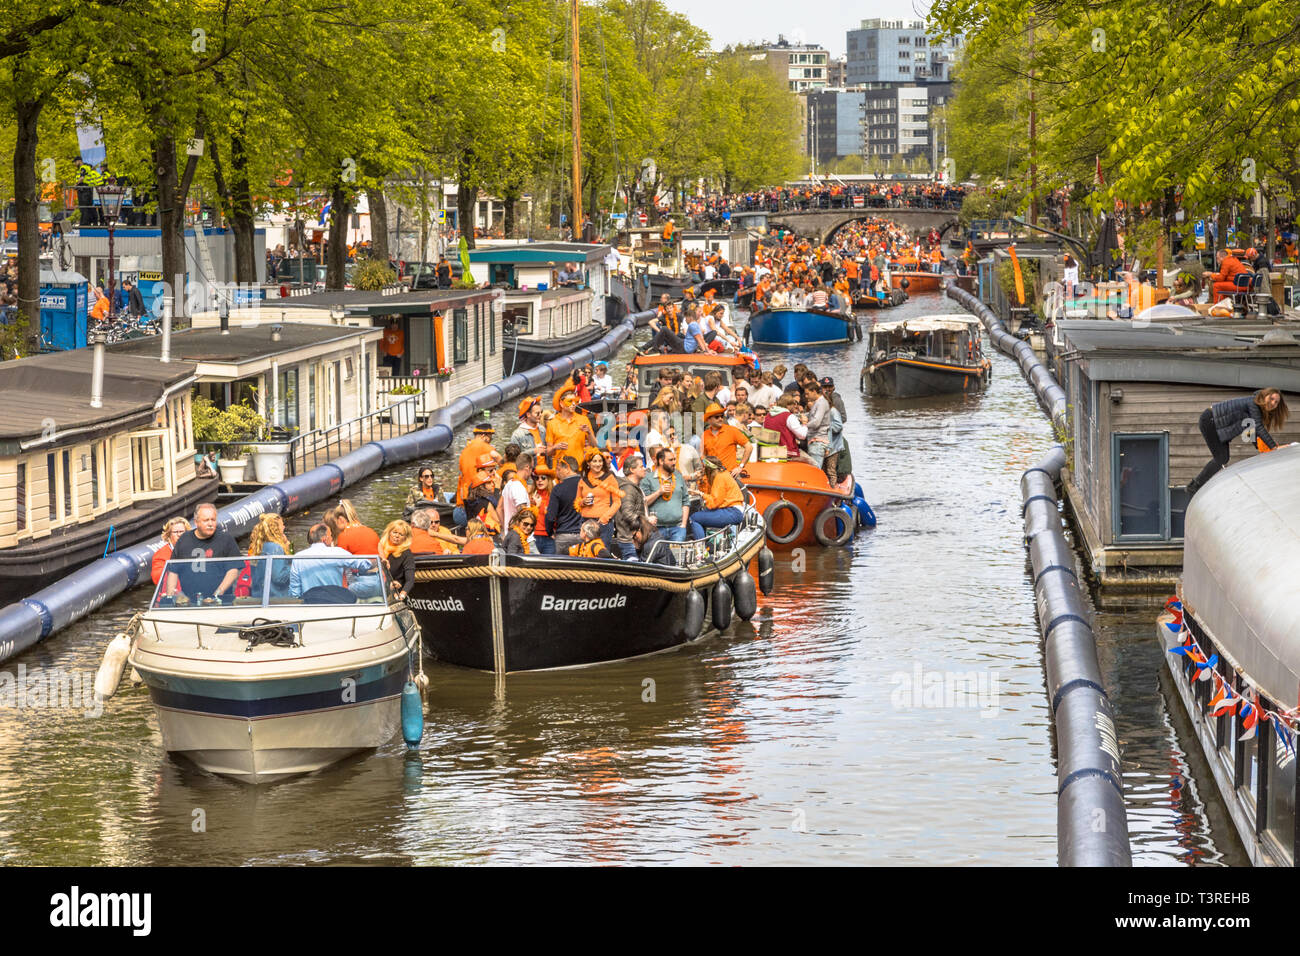 AMSTERDAM, THE NETHERLANDS - APRIL 27 2018: Canal boat parade on Koningsdag Kings day festivities. Birthday of the king. Stock Photo